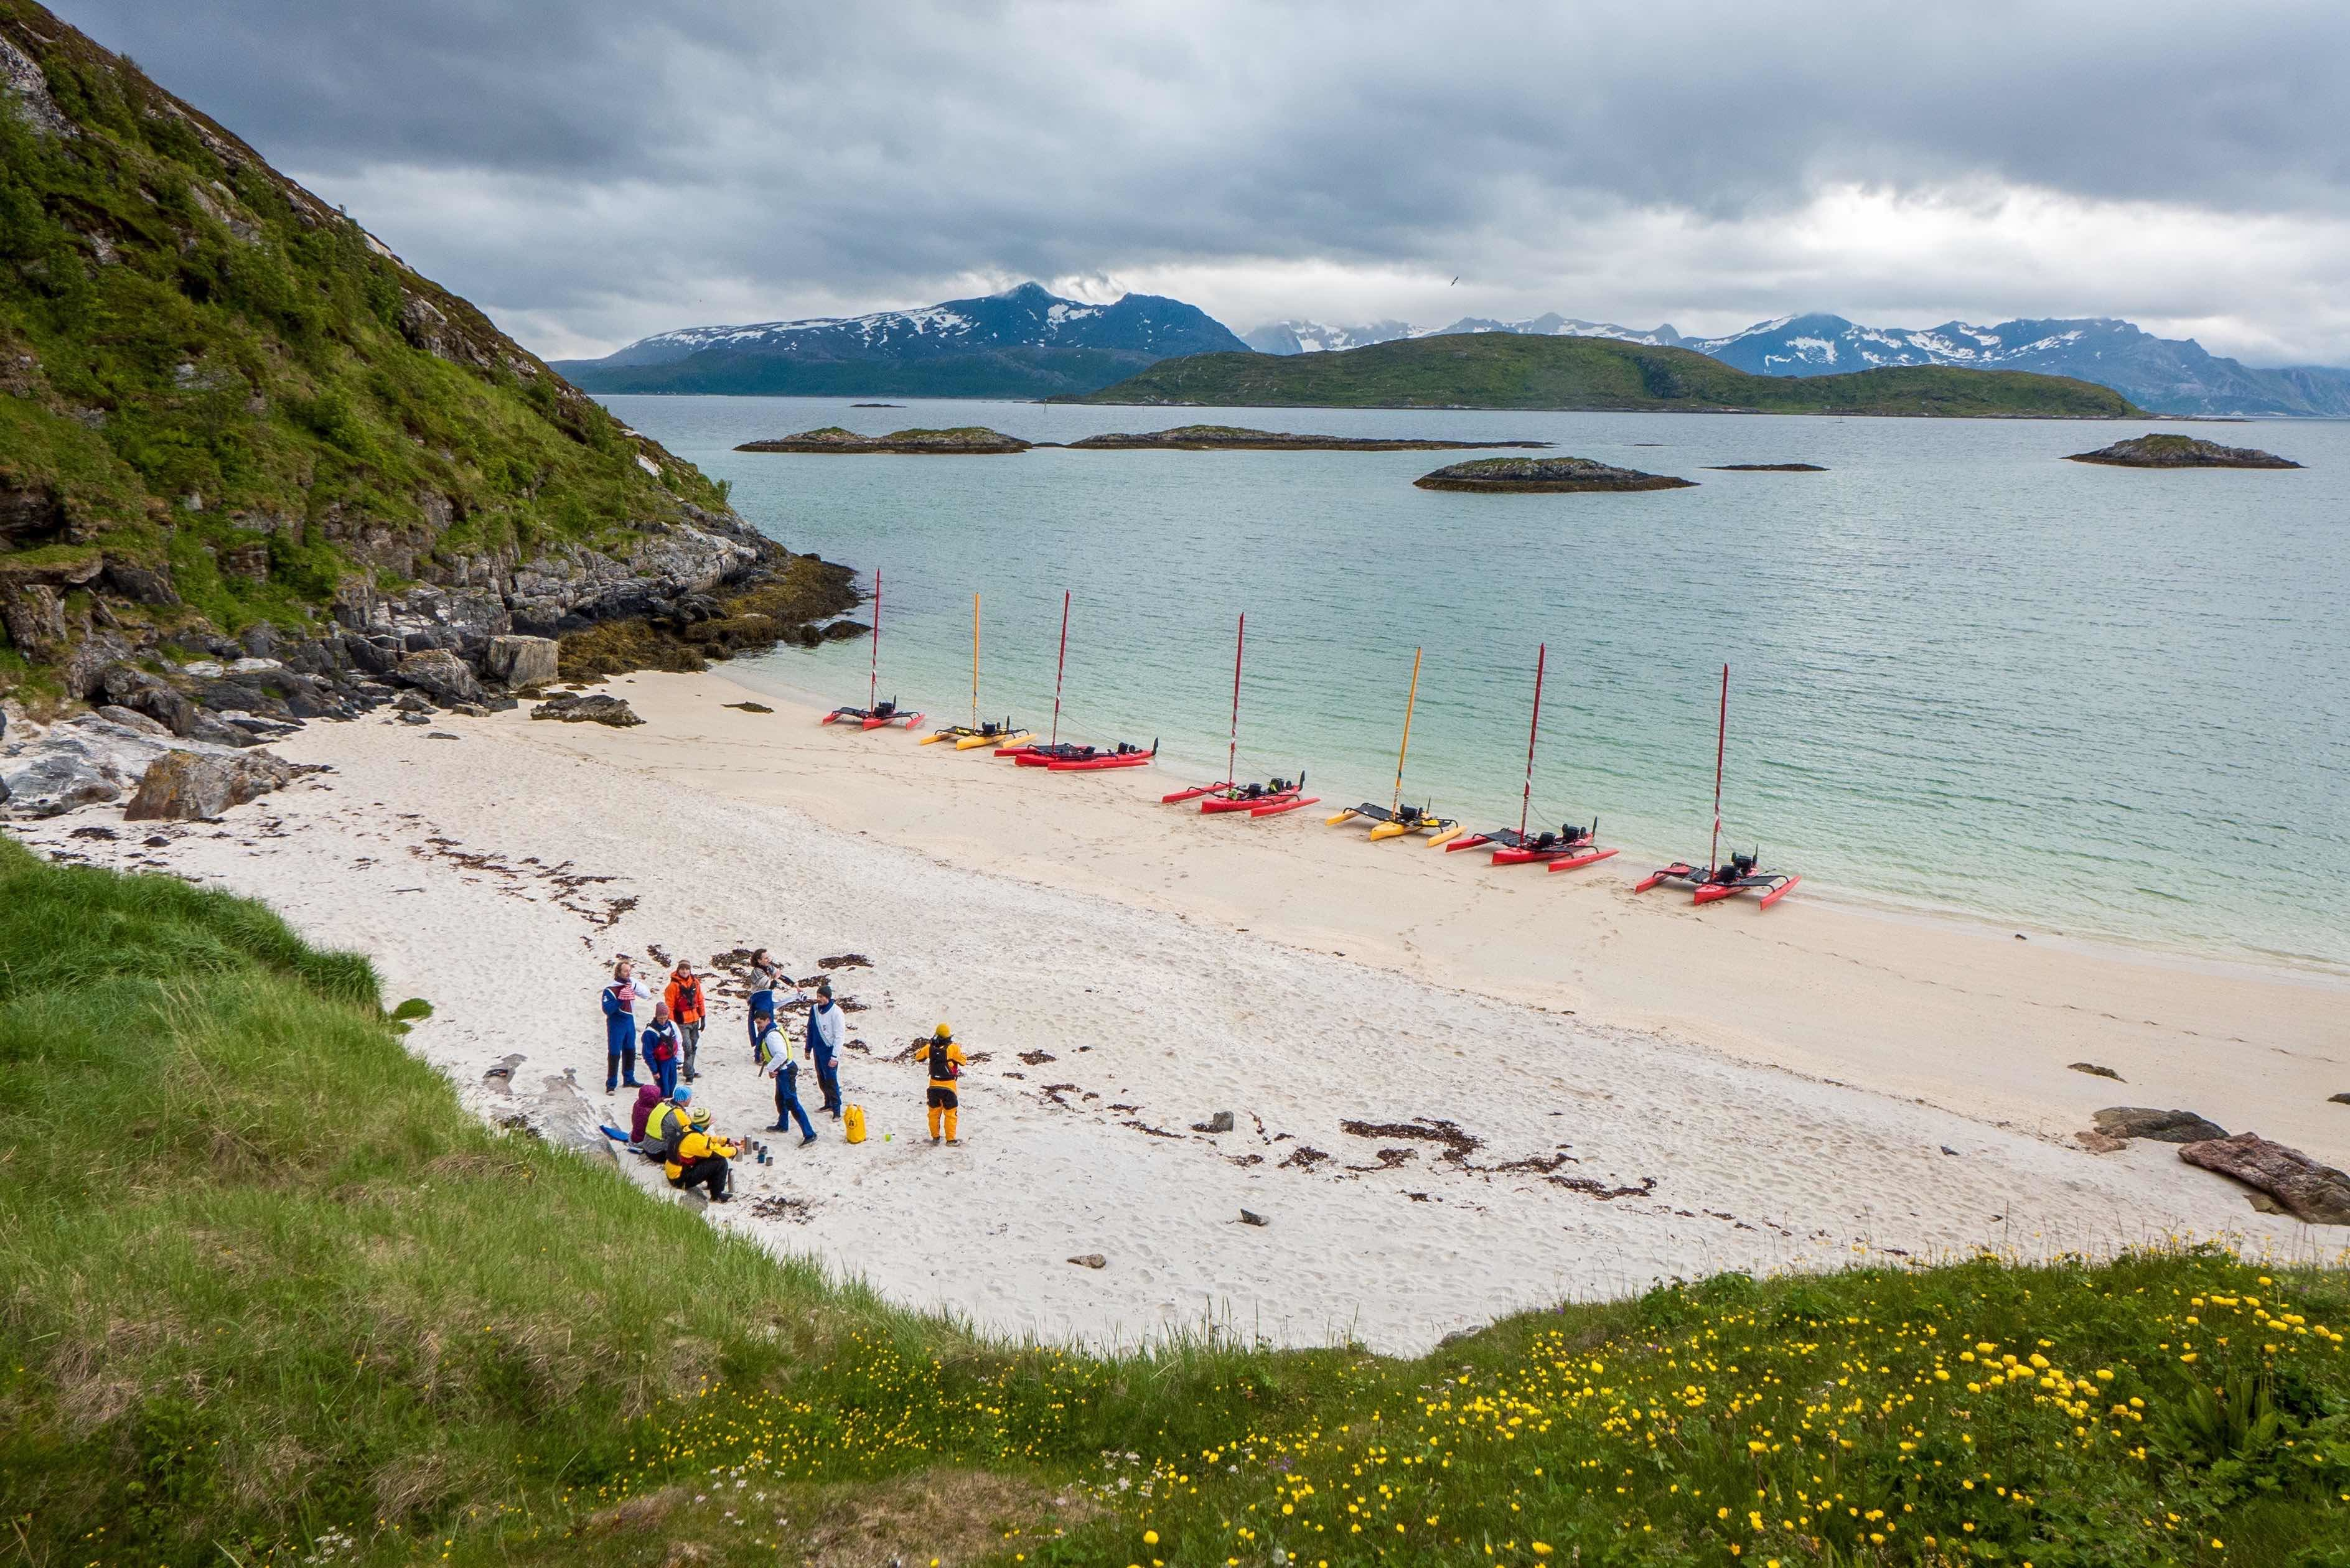 Week-end and short stay trip by sailing kayak off the beaten path – 69 Nord Sommarøy Outdoor Center